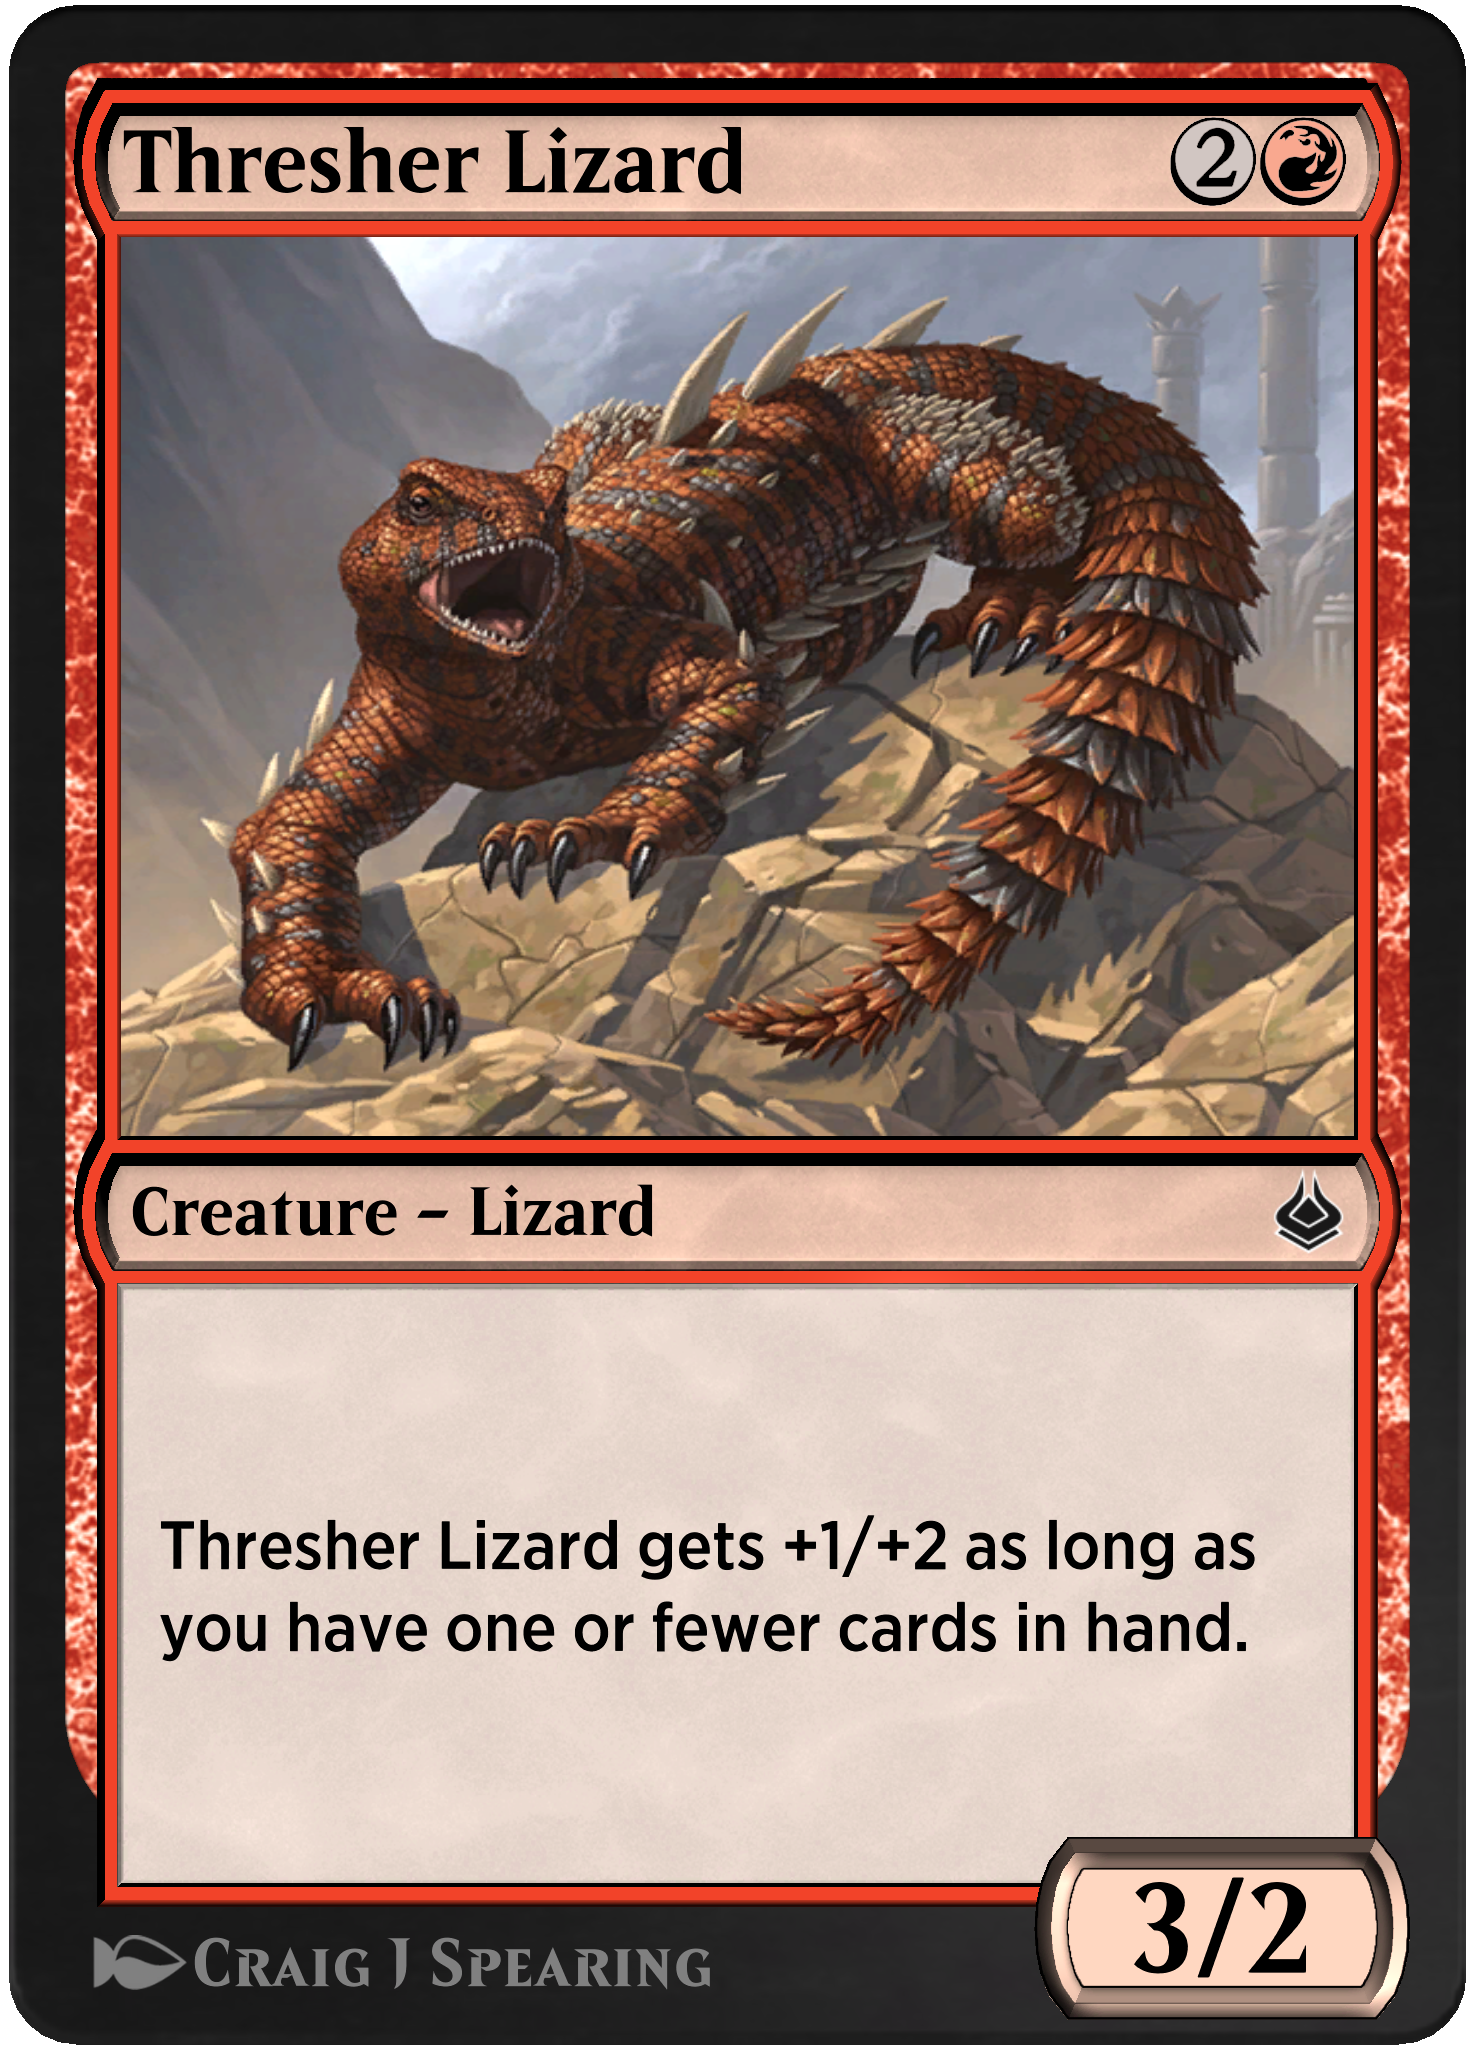 Thresher Lizard